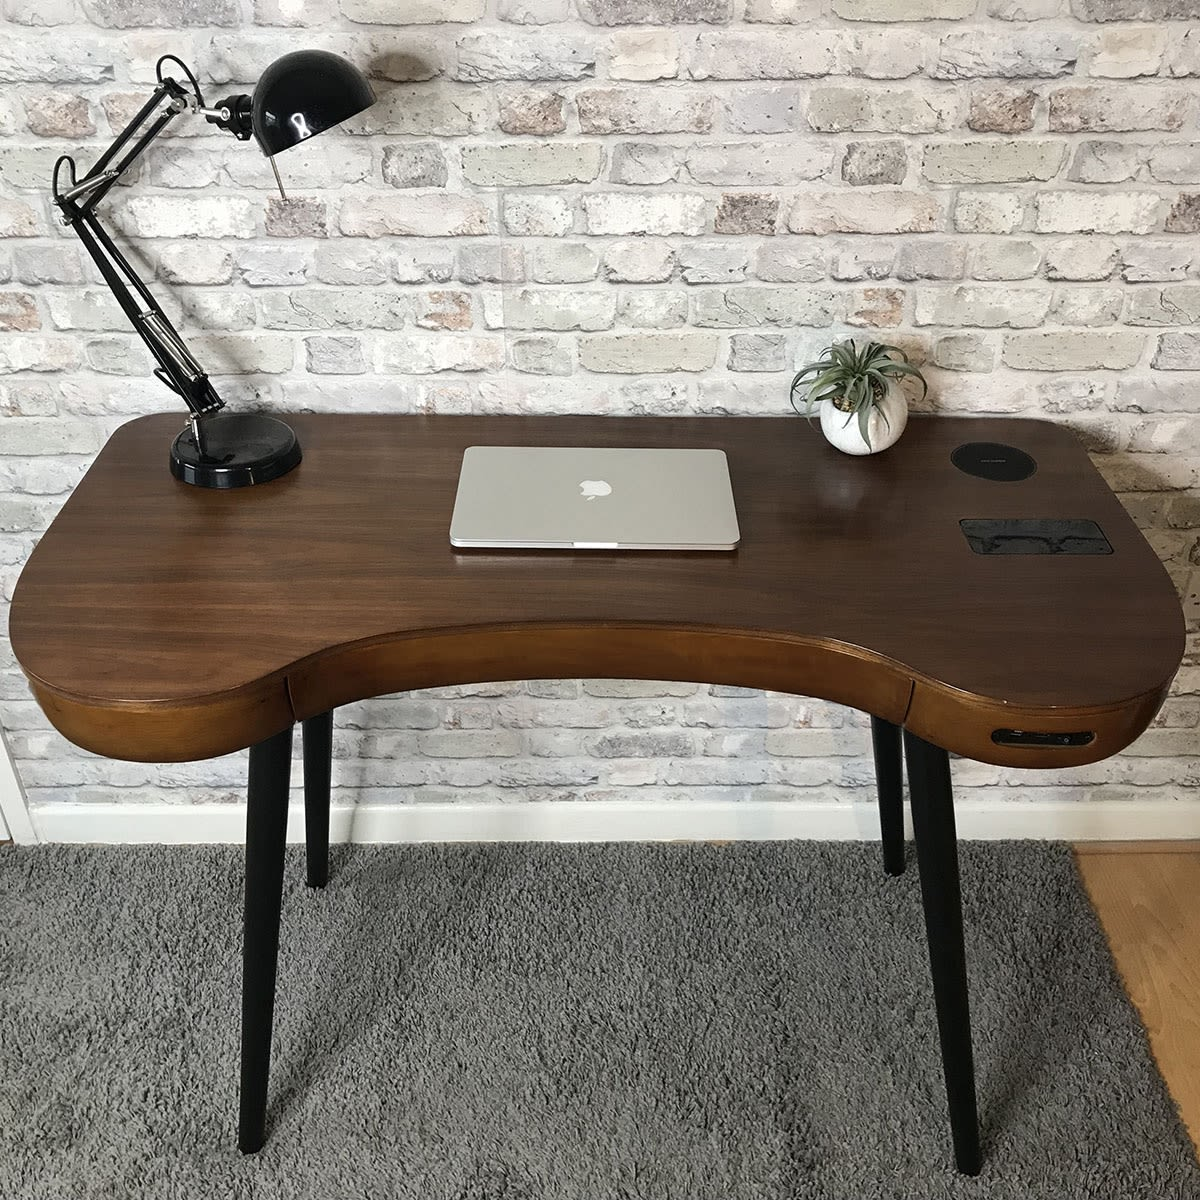 Smart furniture for the home office